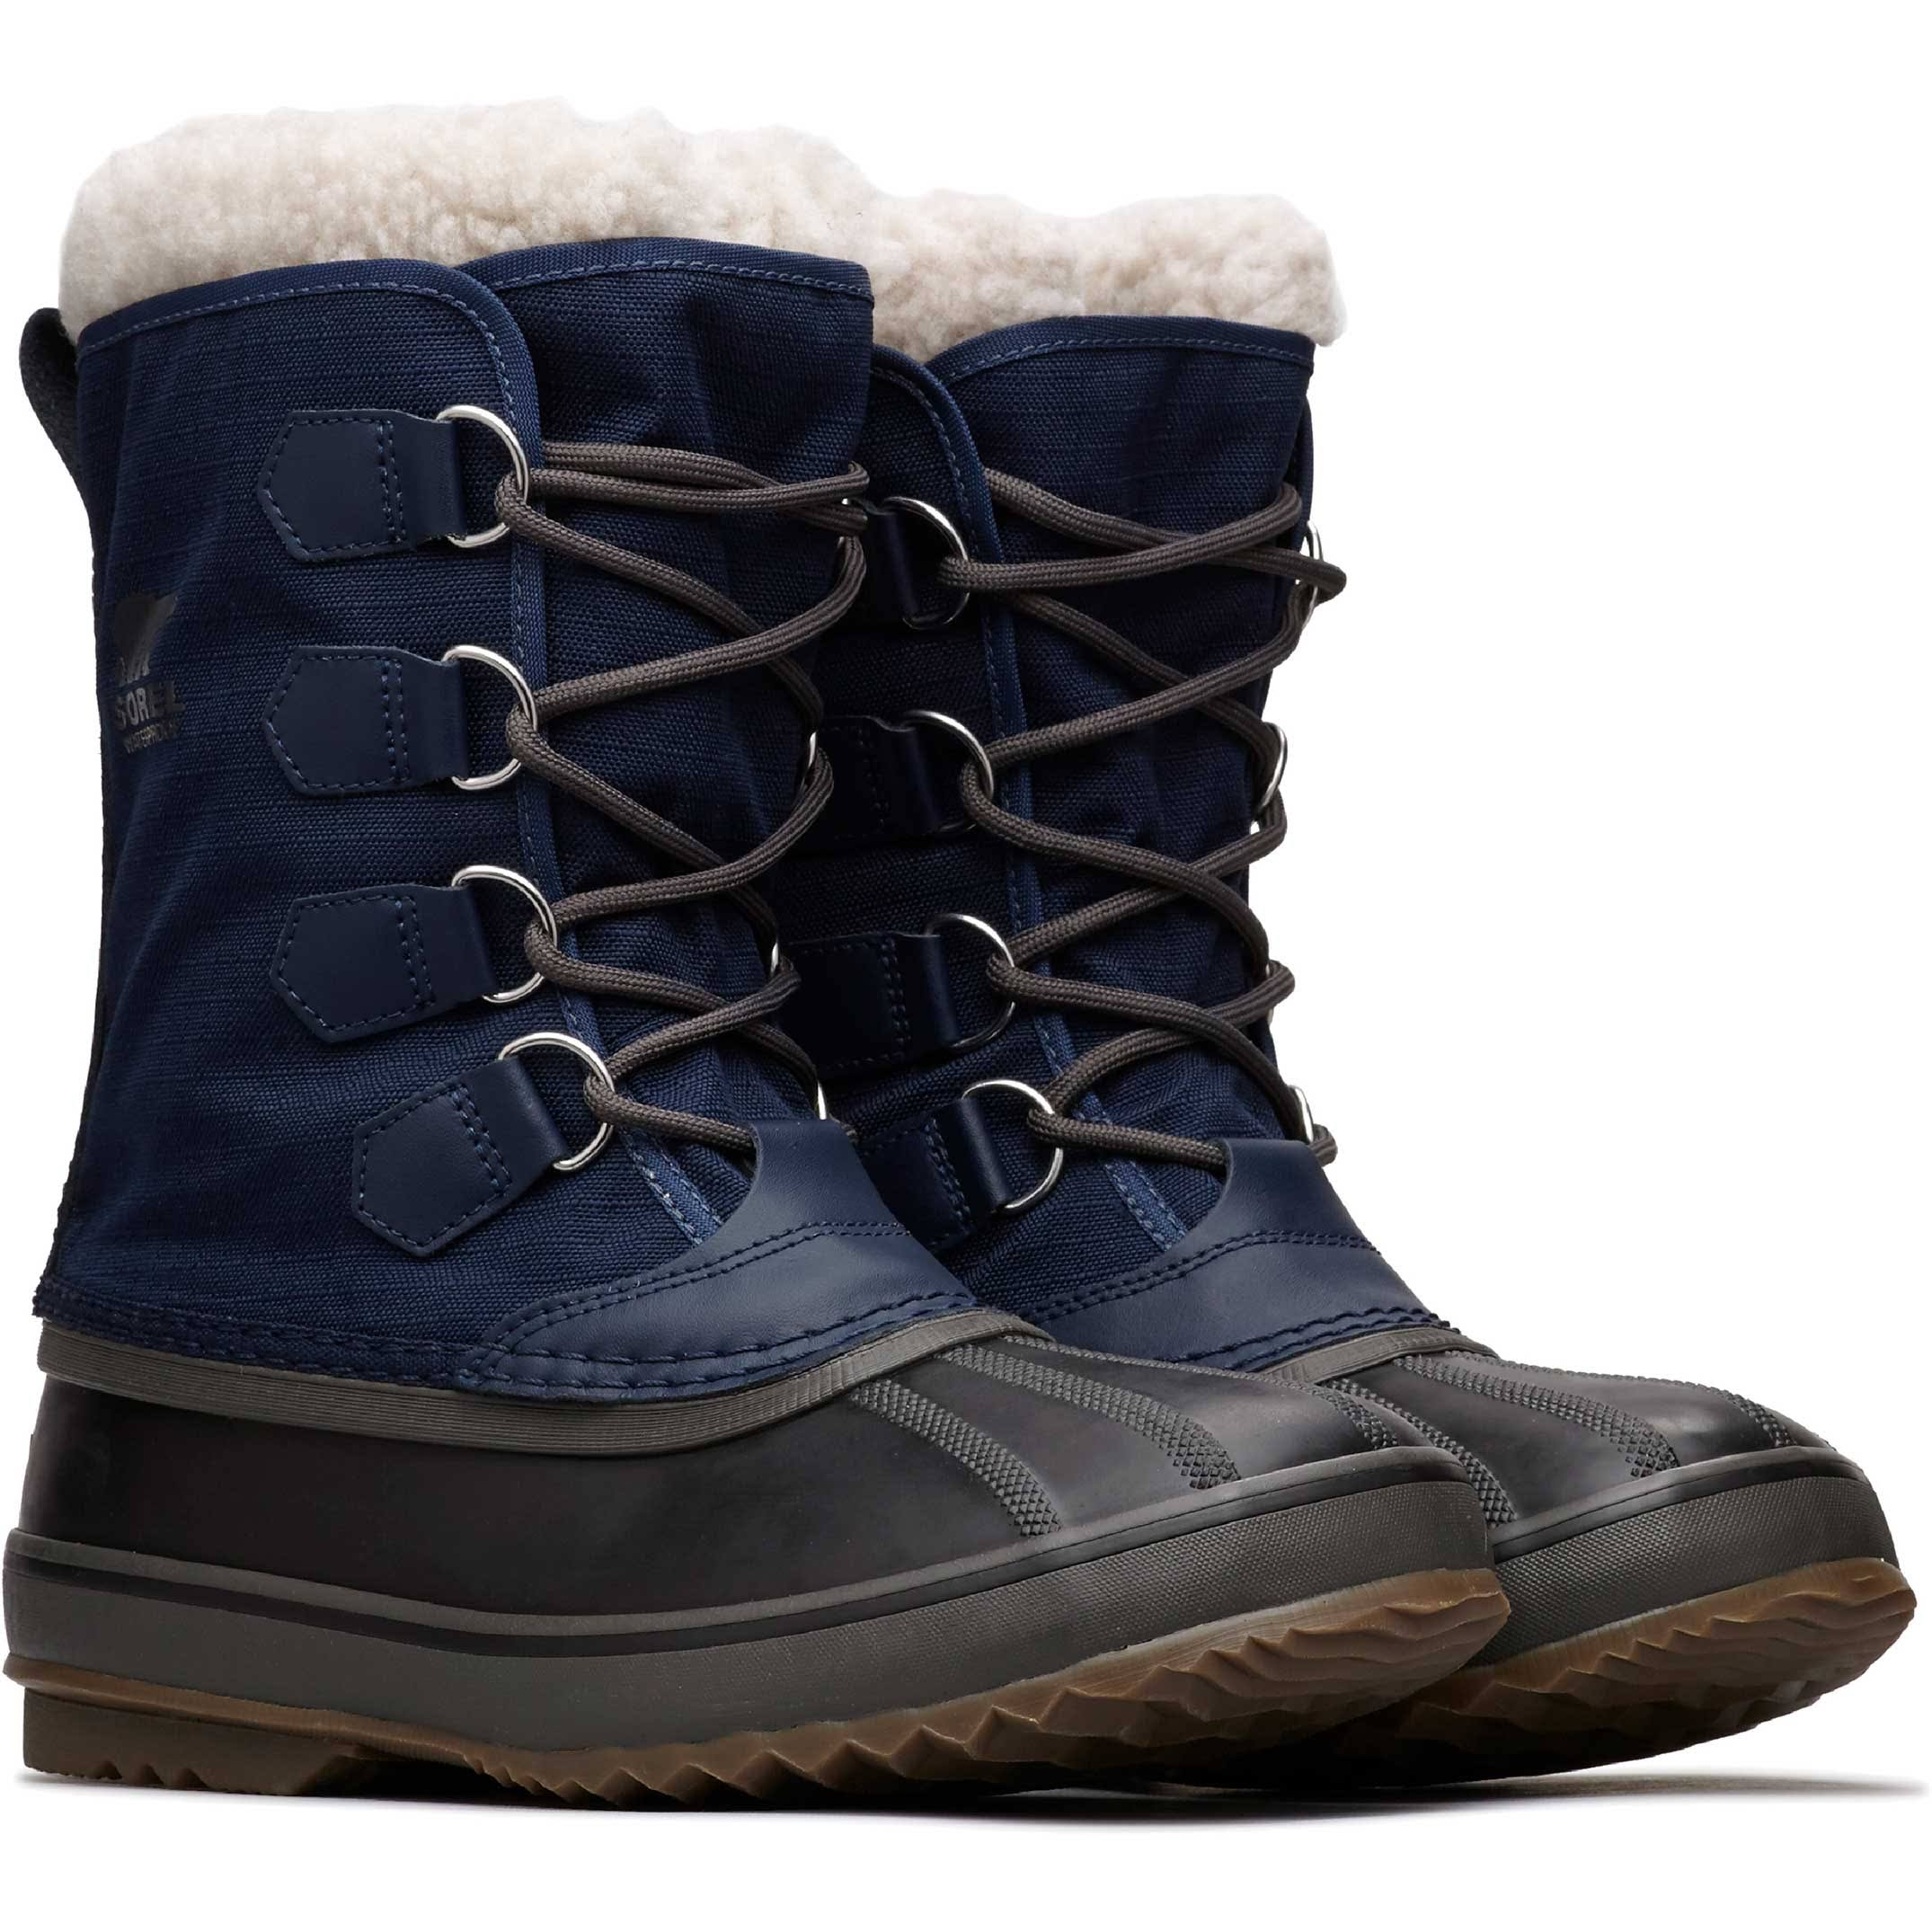 Collegiate Sorel Nylon Pac Boots Snow Navy 1964 1wxvw4